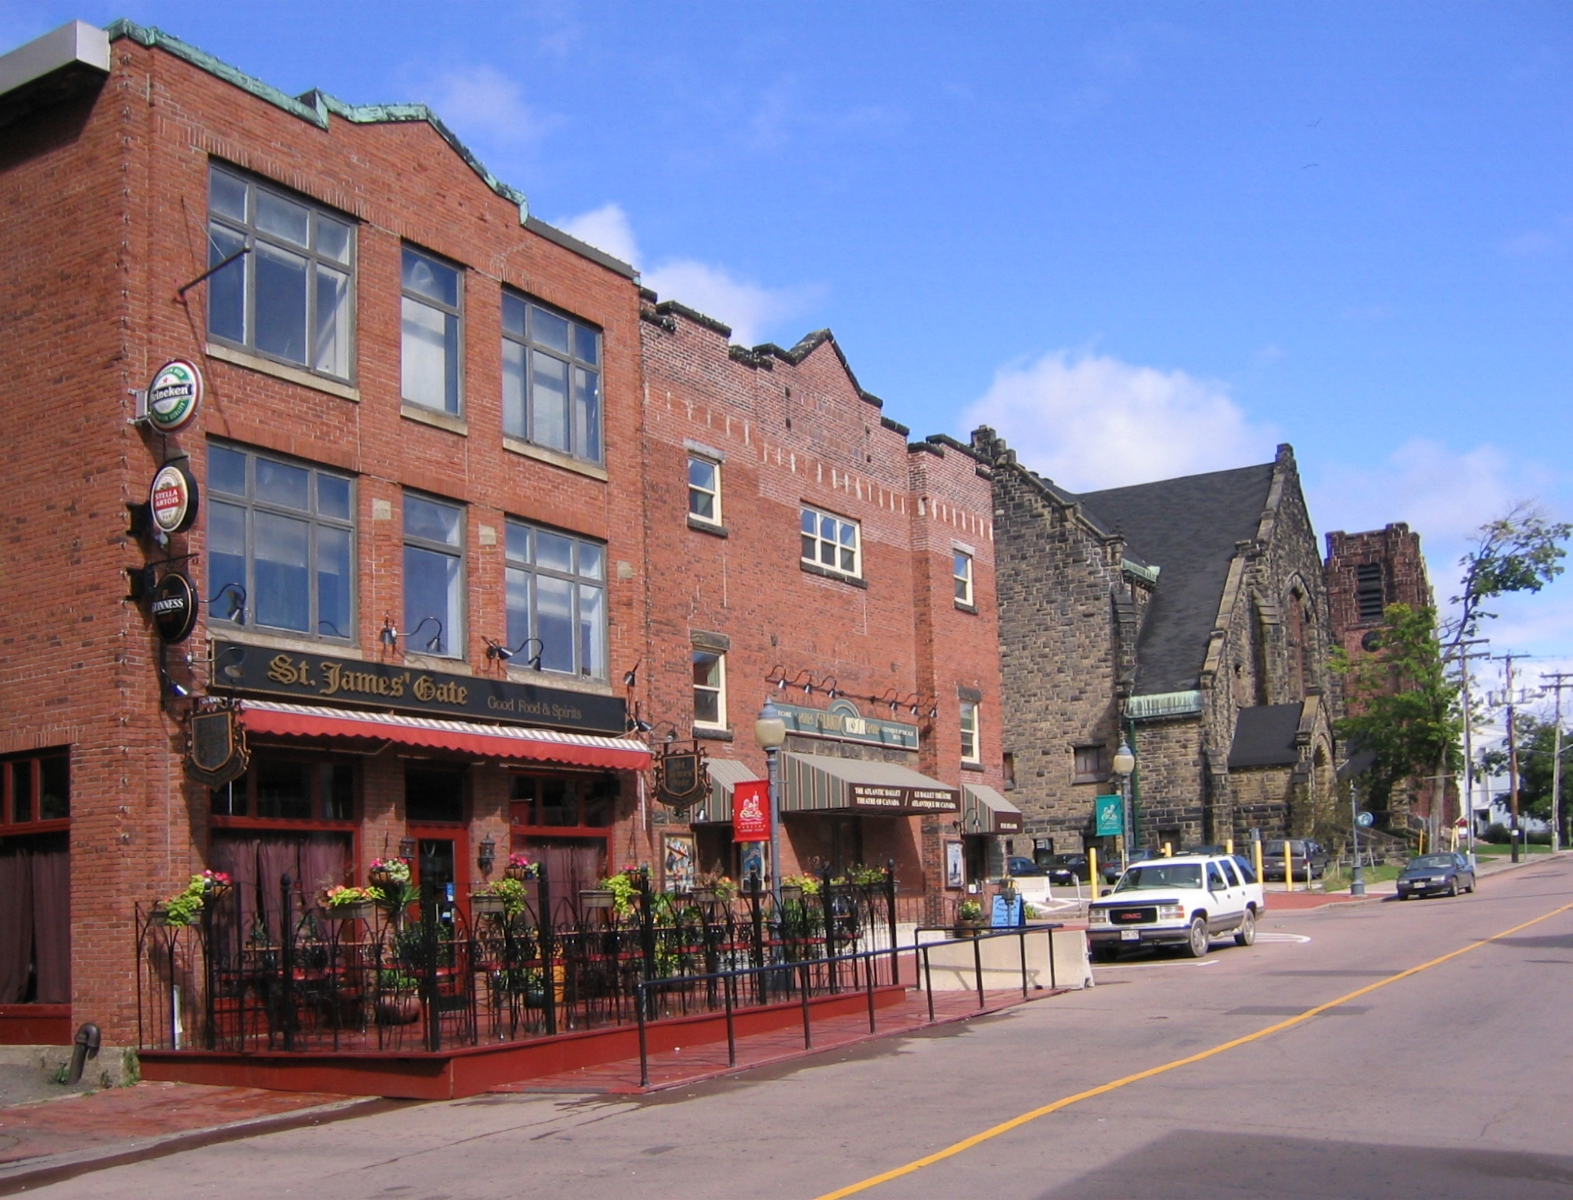 dating moncton new brunswick Top new brunswick landmarks: see reviews and photos of sights to see in new brunswick, canada on tripadvisor.